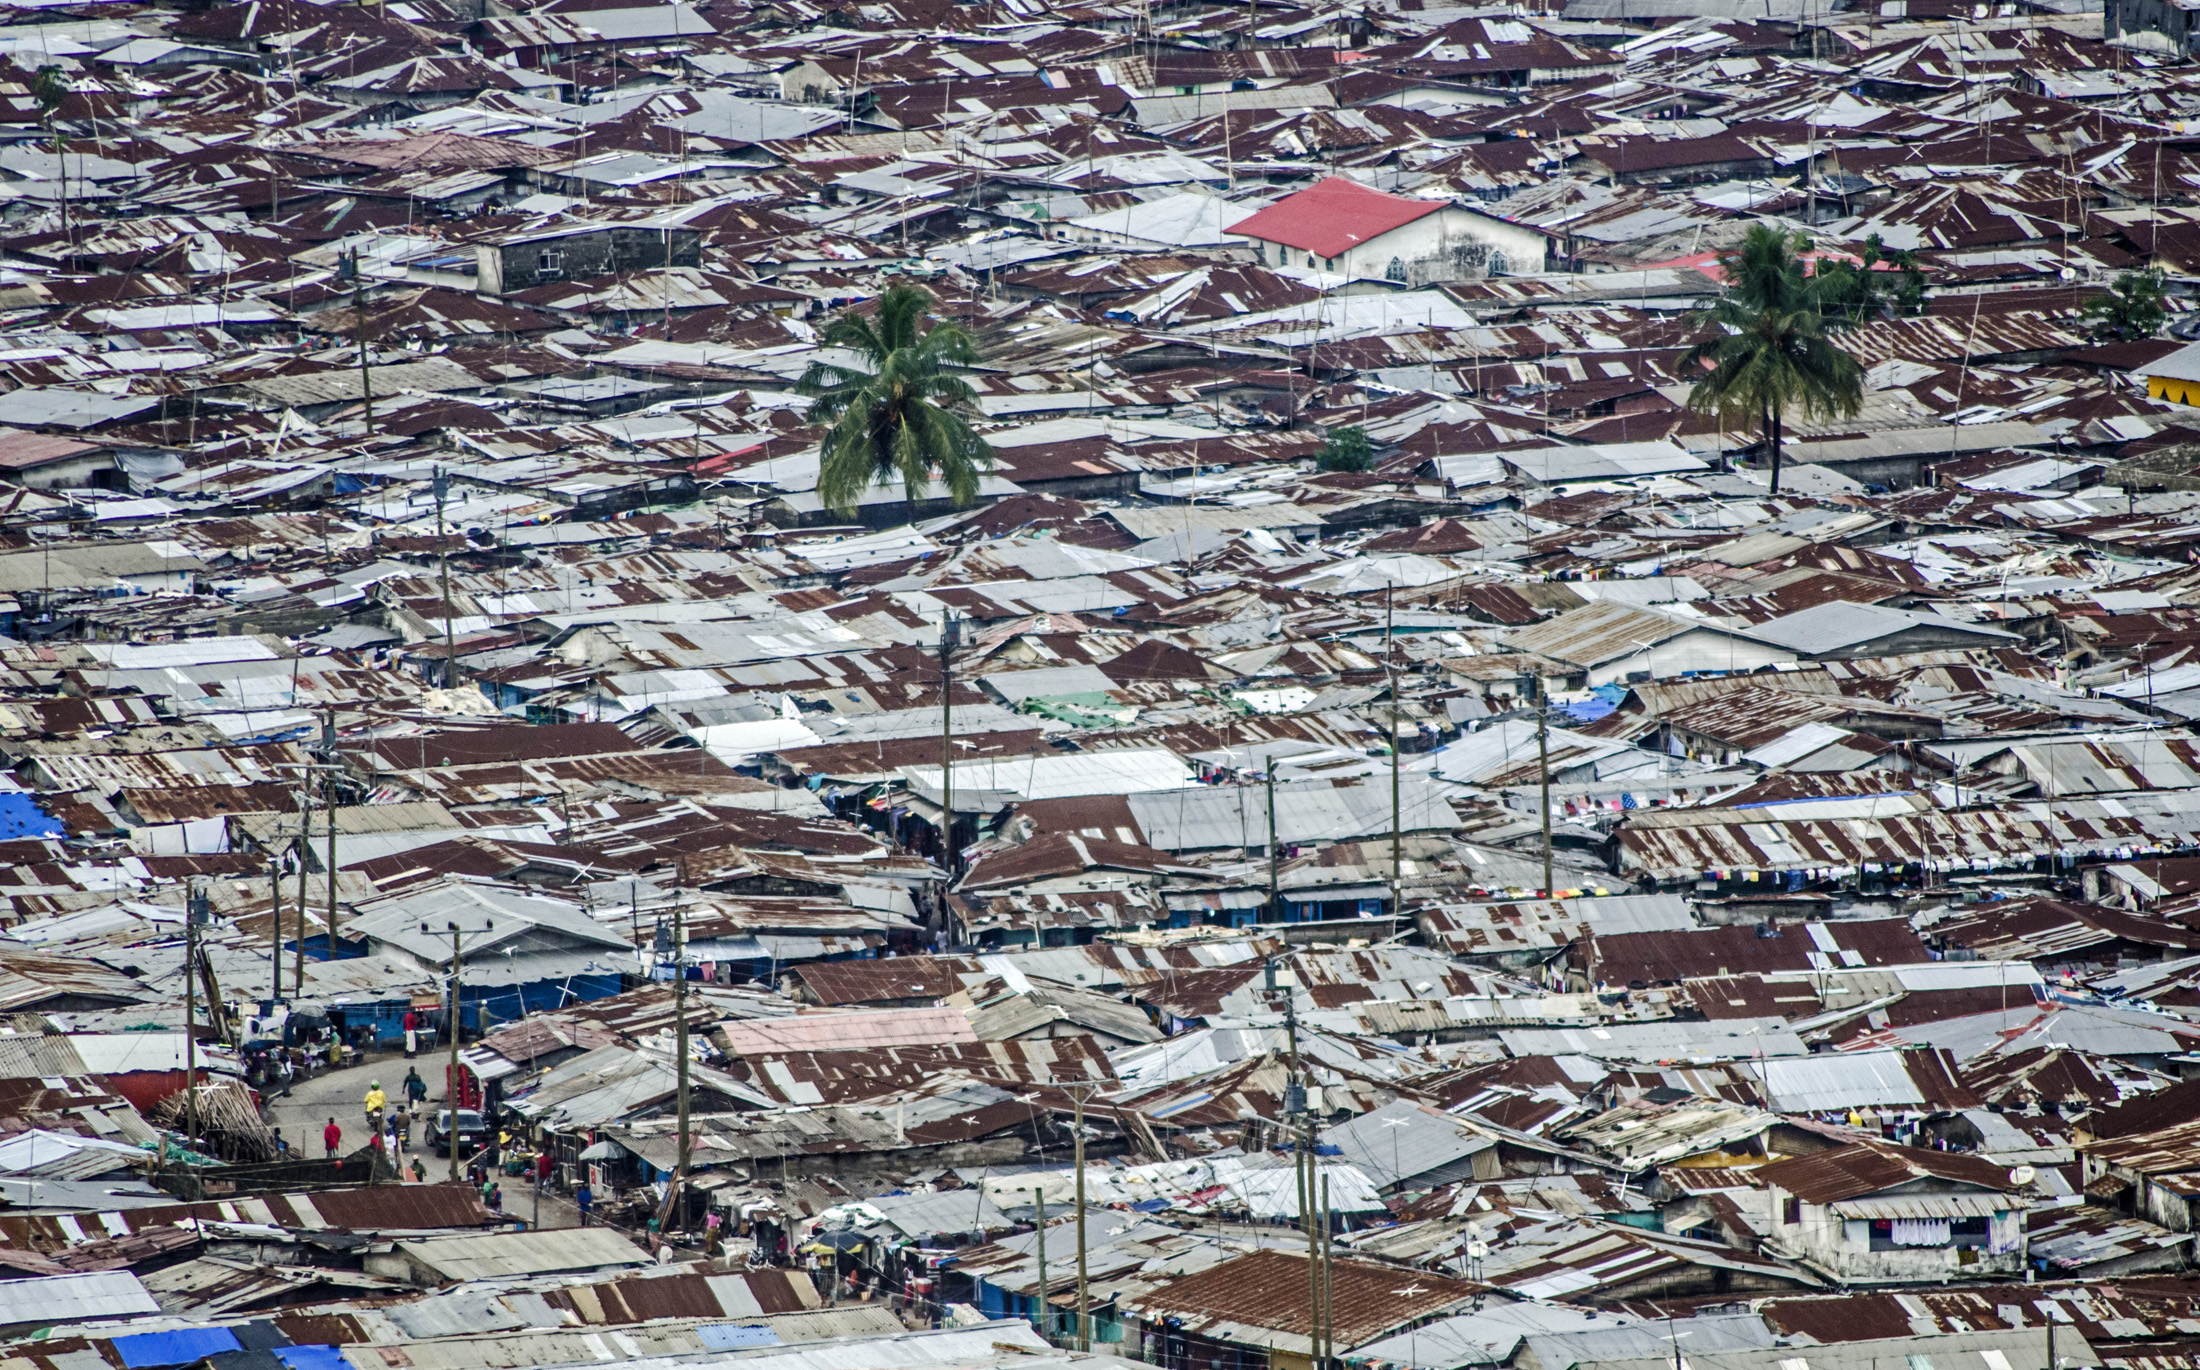 West Point slum, near central Monrovia (June 2013)